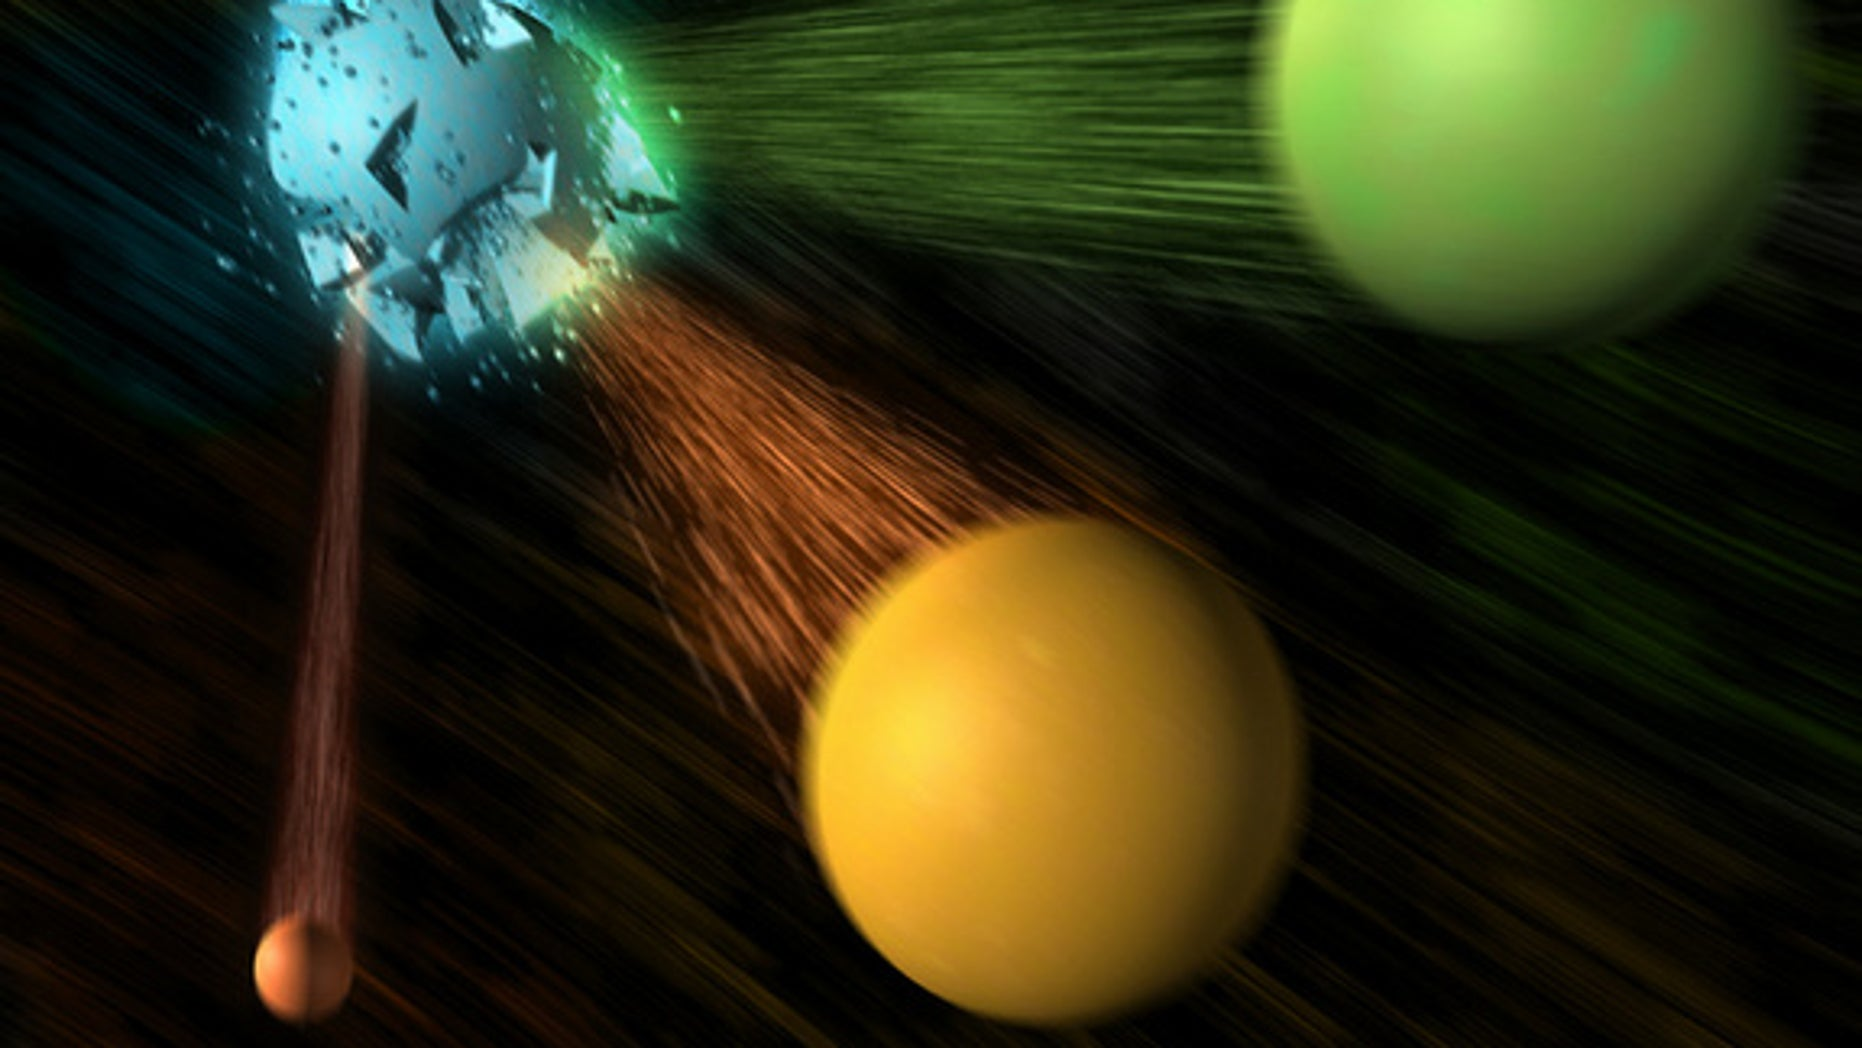 This illustration shows a an electron and positron colliding, resulting in a B meson (not shown) and an antimatter B-bar meson, which then decays into a D meson and a tau lepton as well as a smaller antineutrino. In findings reported in June 20.